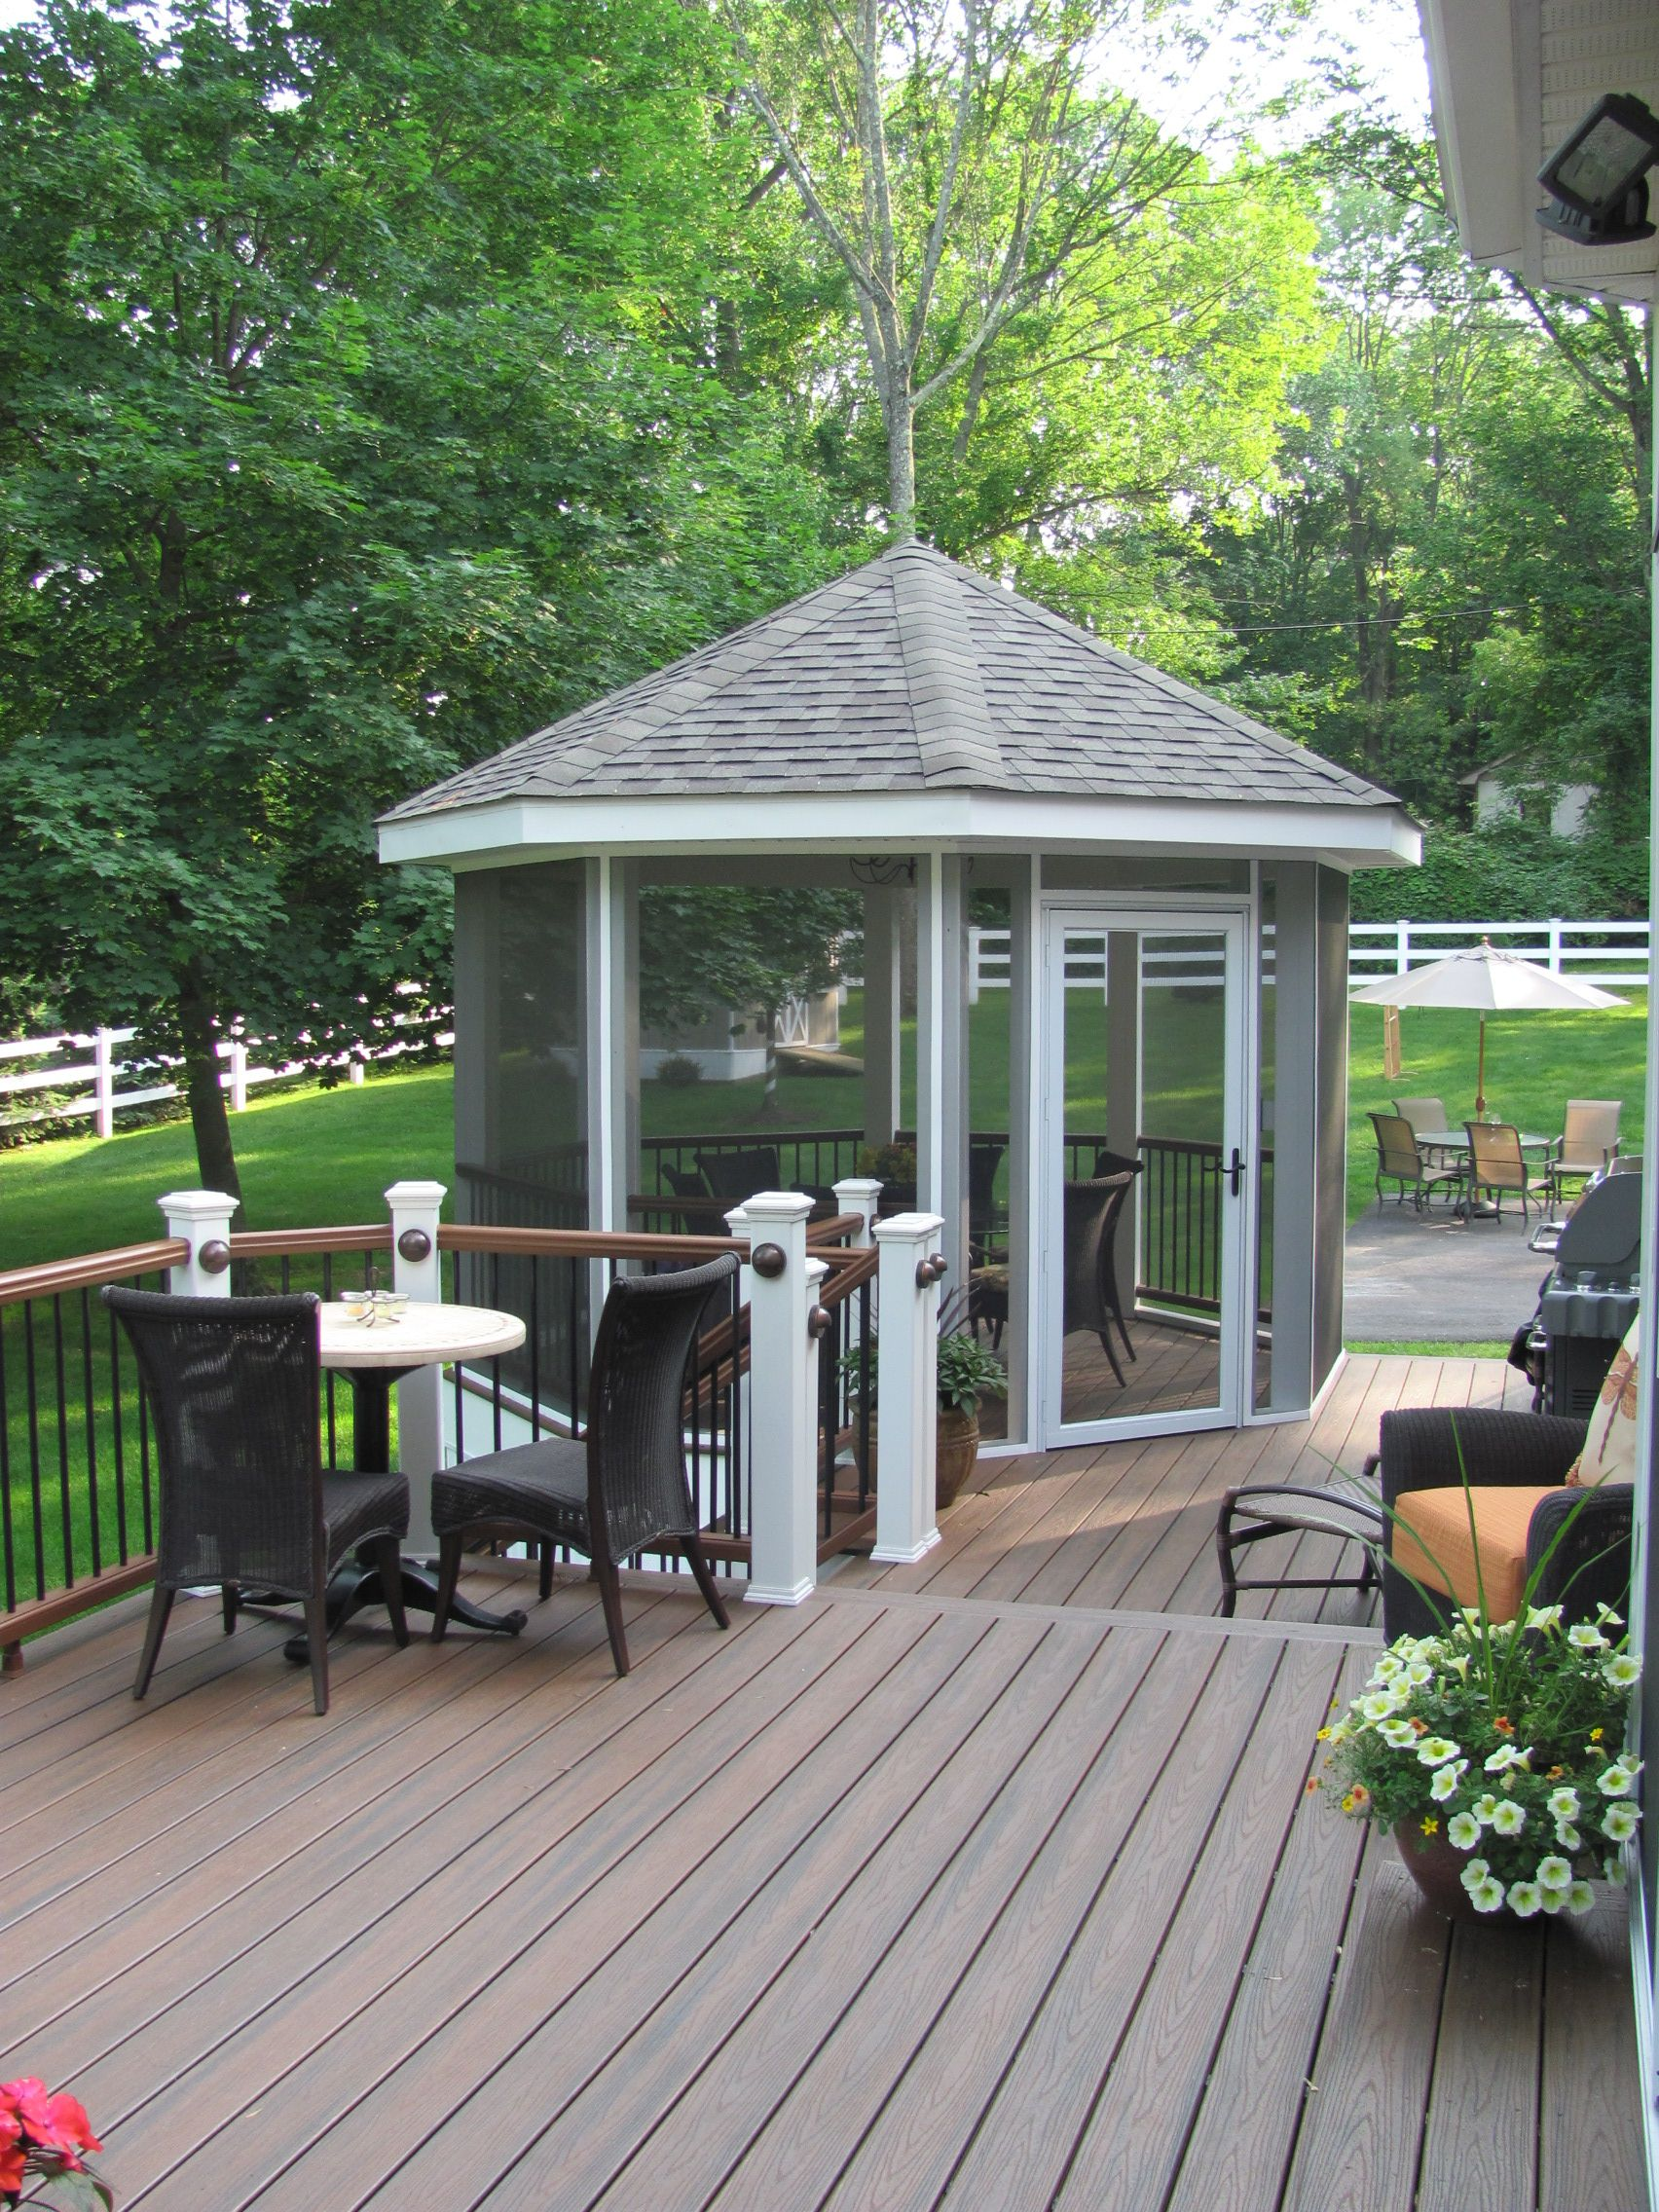 Multi tiered deck with screened in gazebo provides open